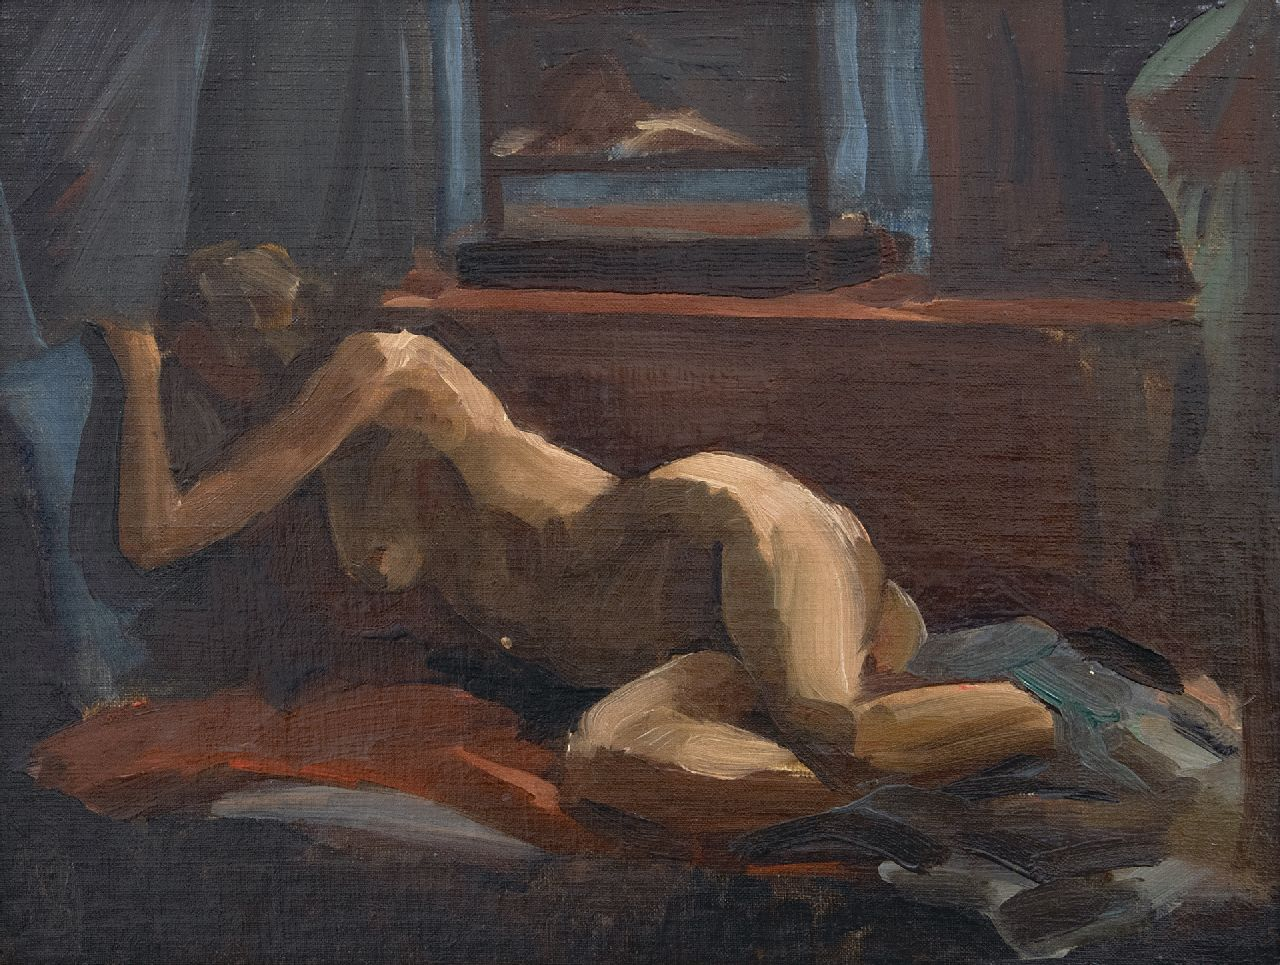 Paul Maze | Reclining nude and voyeur, oil on canvas laid down on board, 27.0 x 34.8 cm